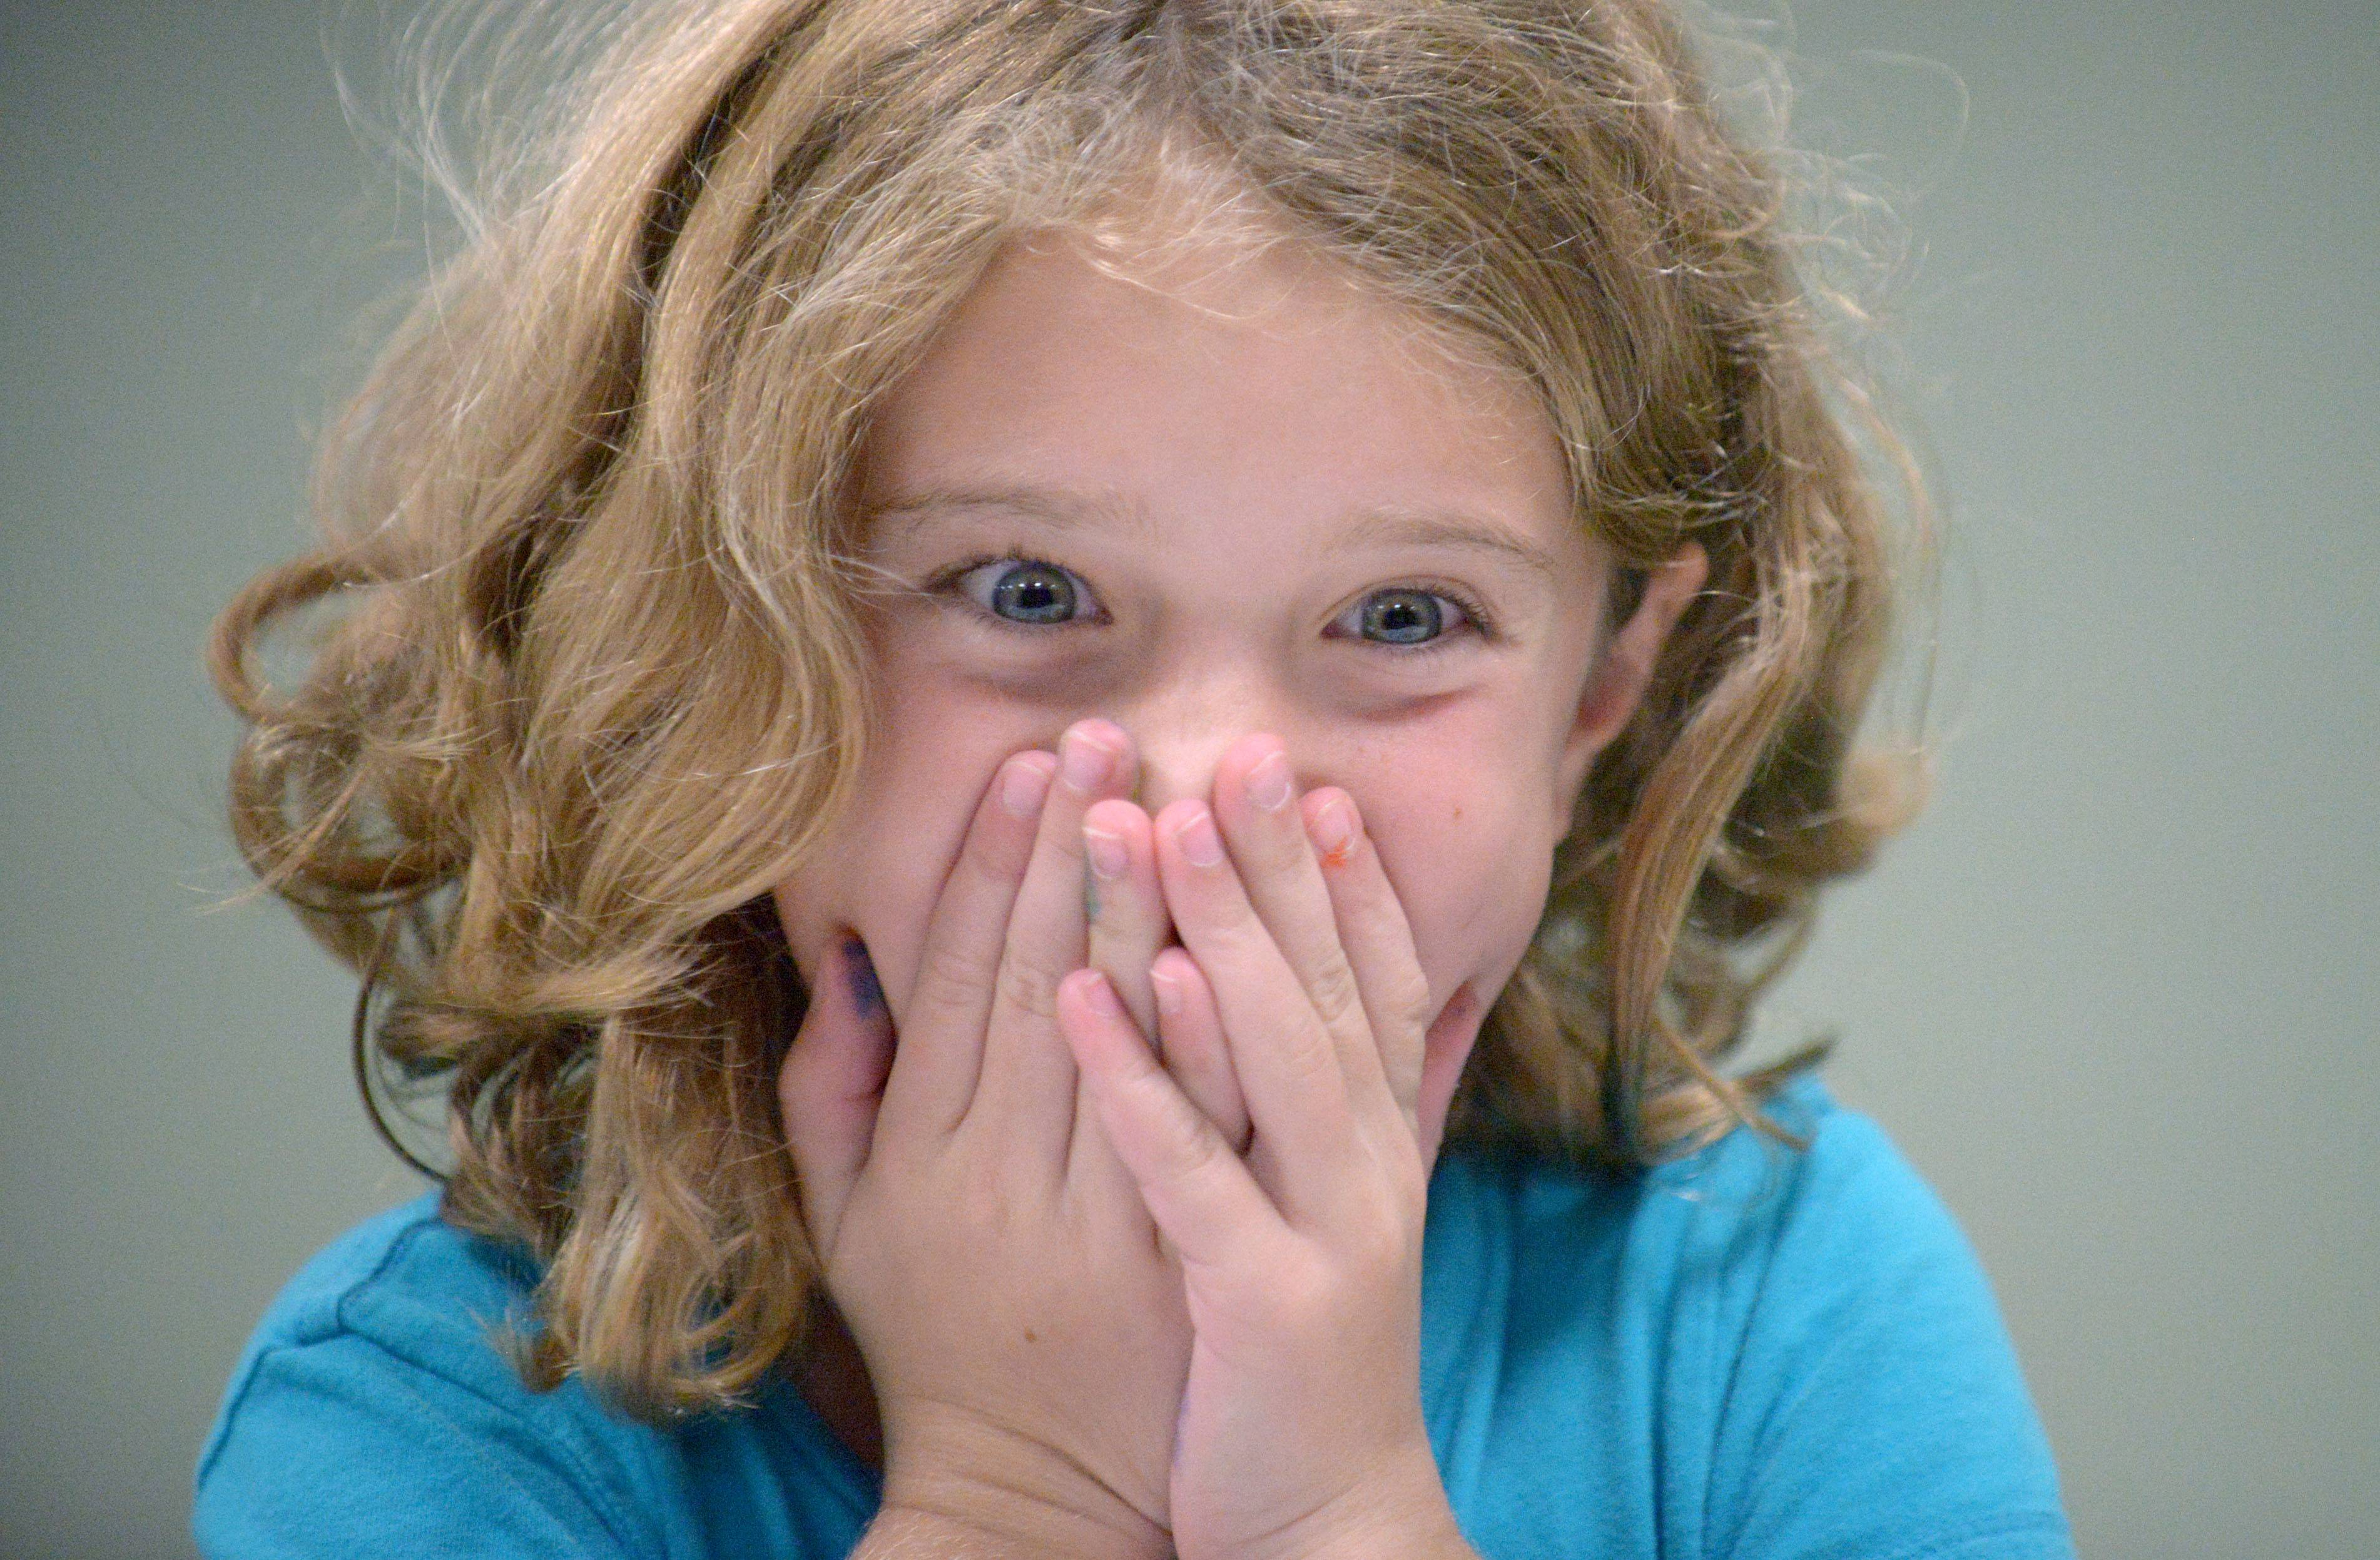 "Morgan Hodgdon, 9, of Geneva, reacts (negatively) to blind taste testing white pepper parmesan cheese popcorn while she and other fourth and fifth graders blind taste tested eight flavors of popcorn in honor of National Popcorn Poppin' Month at the Geneva Public Library on Tuesday. ""It smells good but tastes bad!"" she said. Without knowing what each flavor was, they had to guess what flavor it was and rate each sample on qualities like flavor, texture, crunch and more. It was a hit with the kids, even though they didn't like all the flavors which included Thai coconut curry, rosemary truffle, white pepper parmesan, white cheddar, cheddar cheese, kettle corn, carmel and regular."